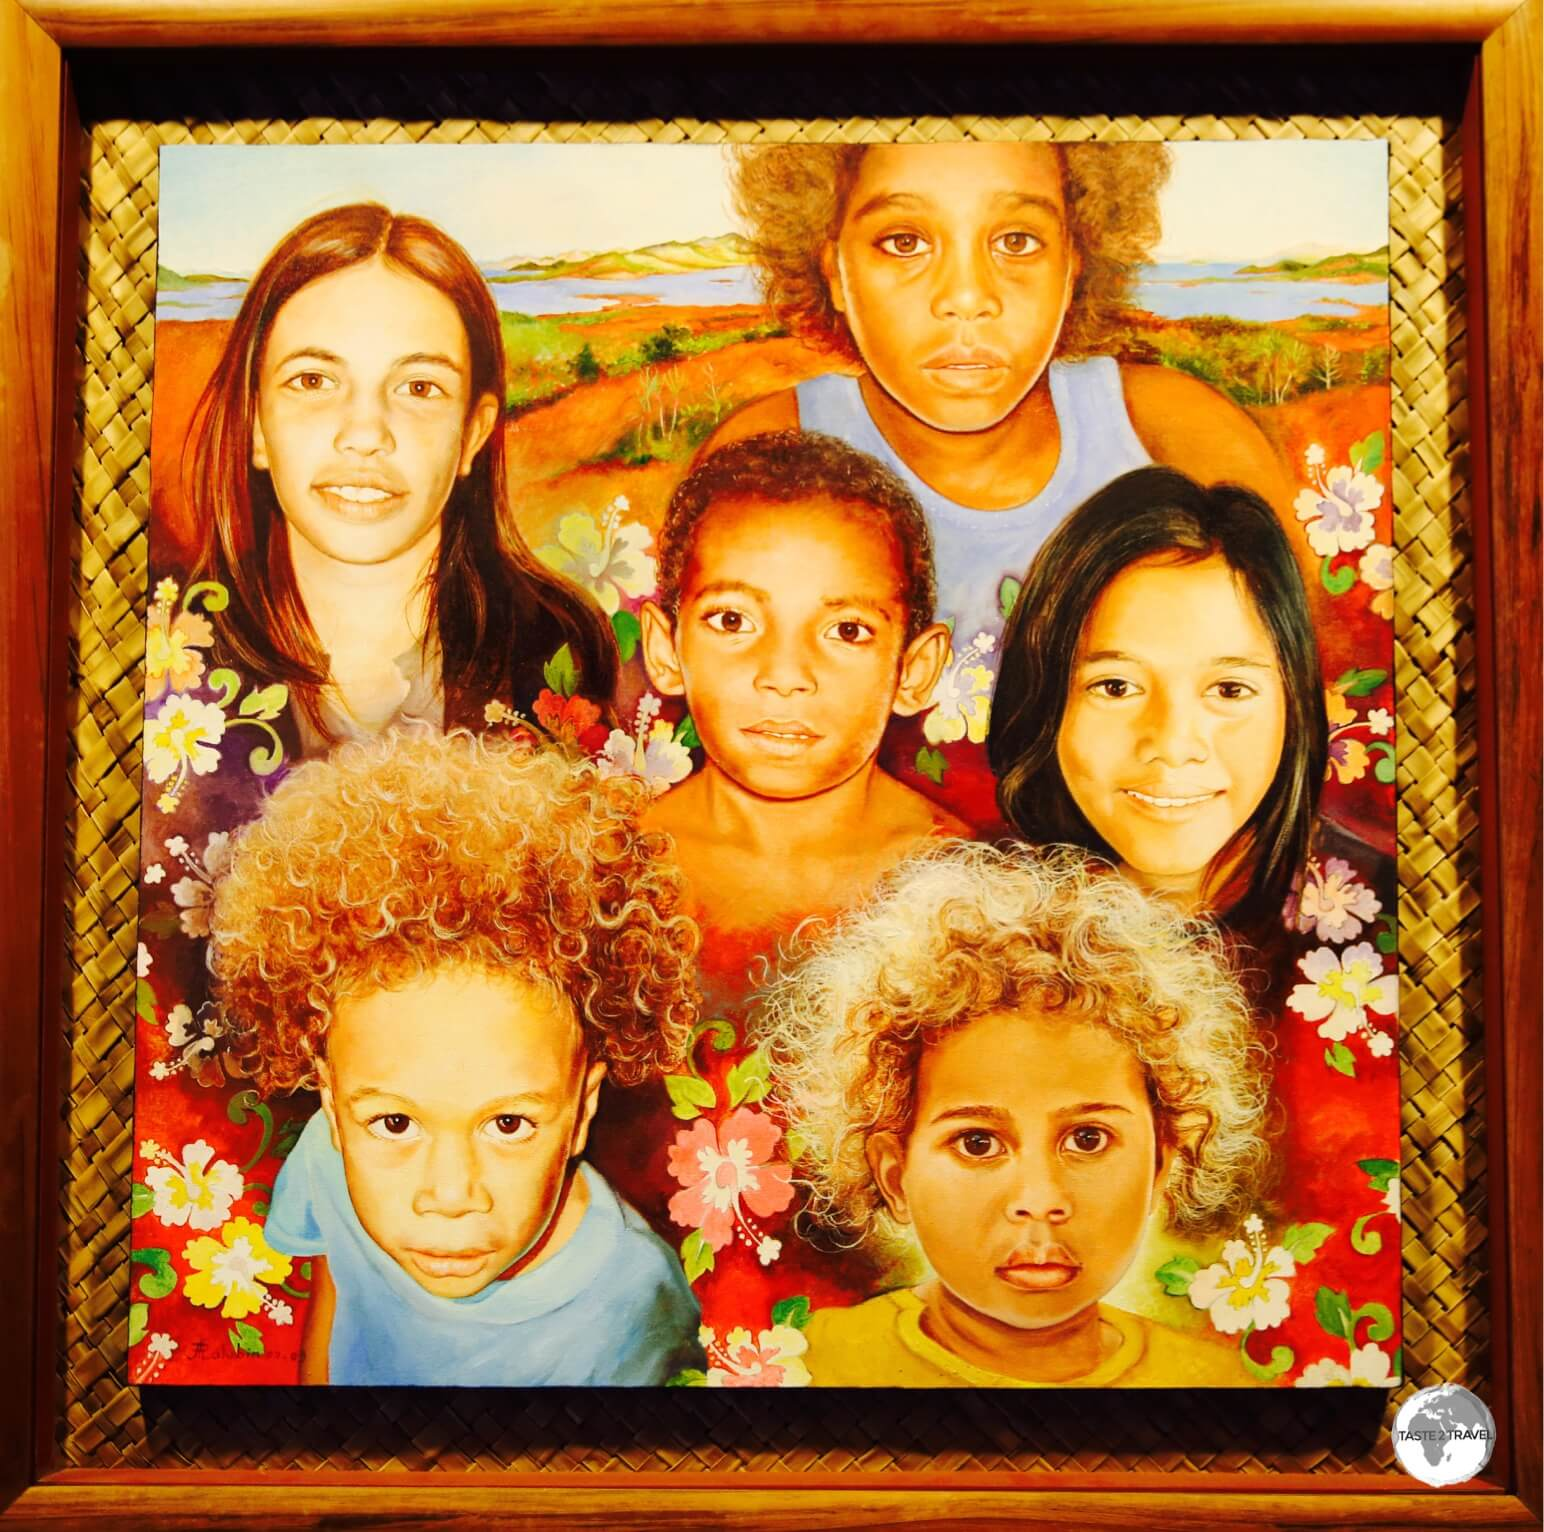 Artwork depicting the faces of New Caledonia at the Museum of New Caledonia.